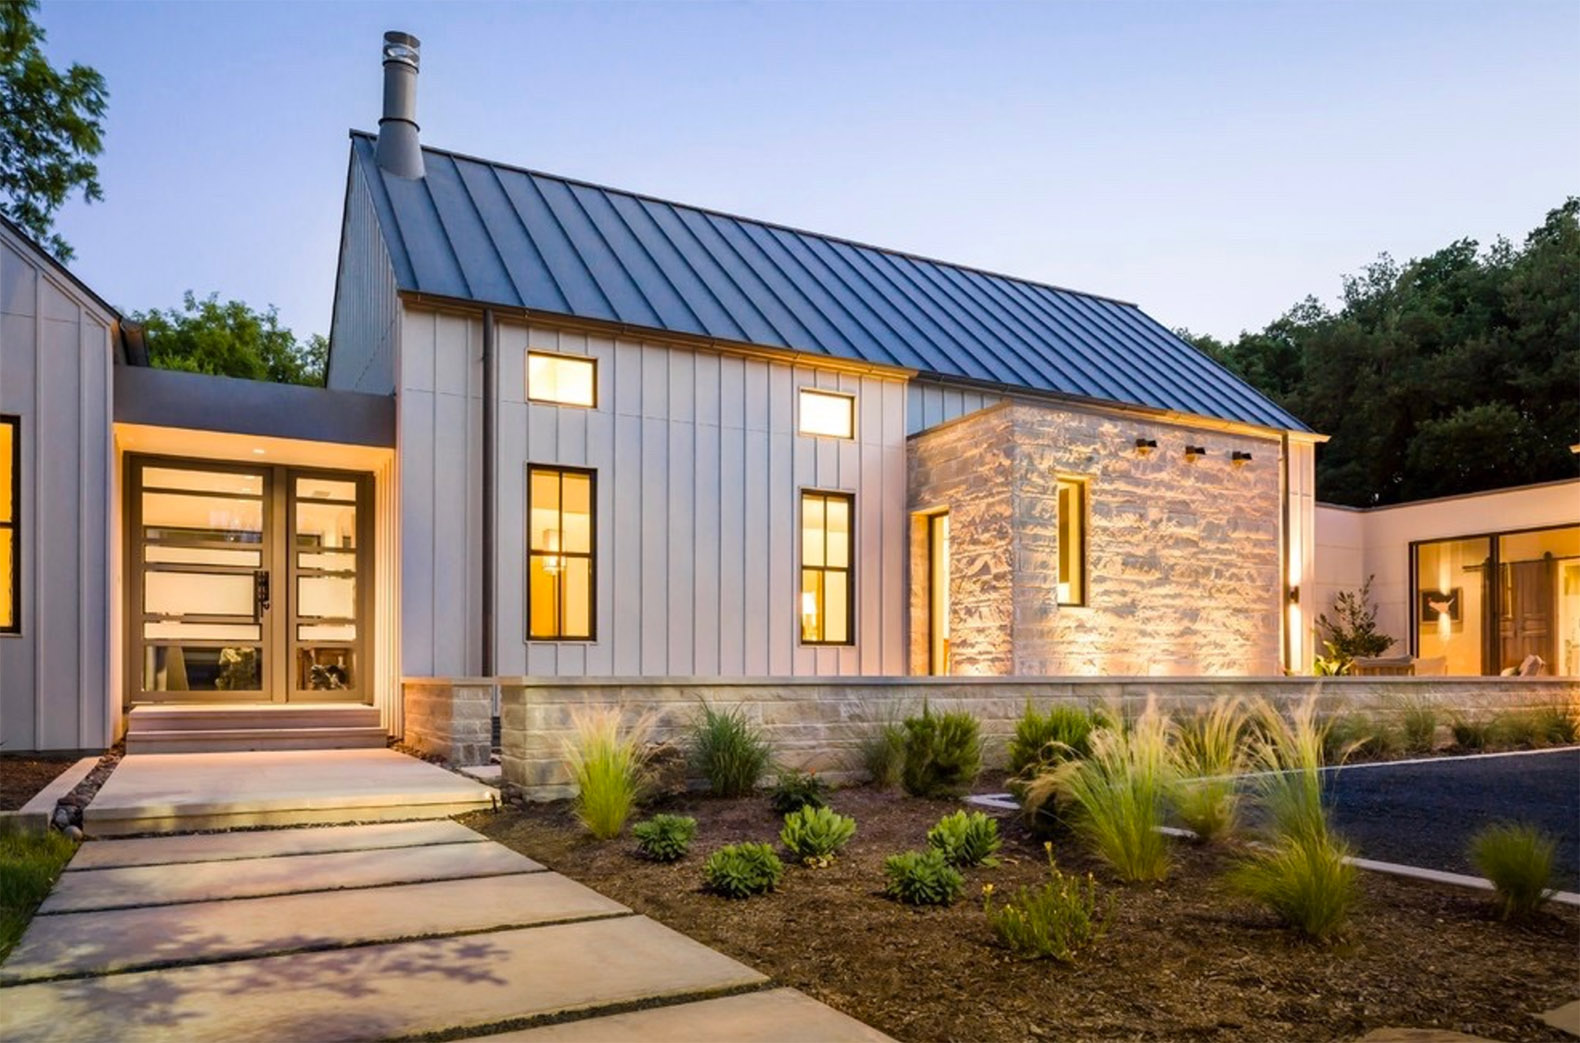 Forward Labs' new solar roof is 33% cheaper than Tesla's - and it can be installed in half the time